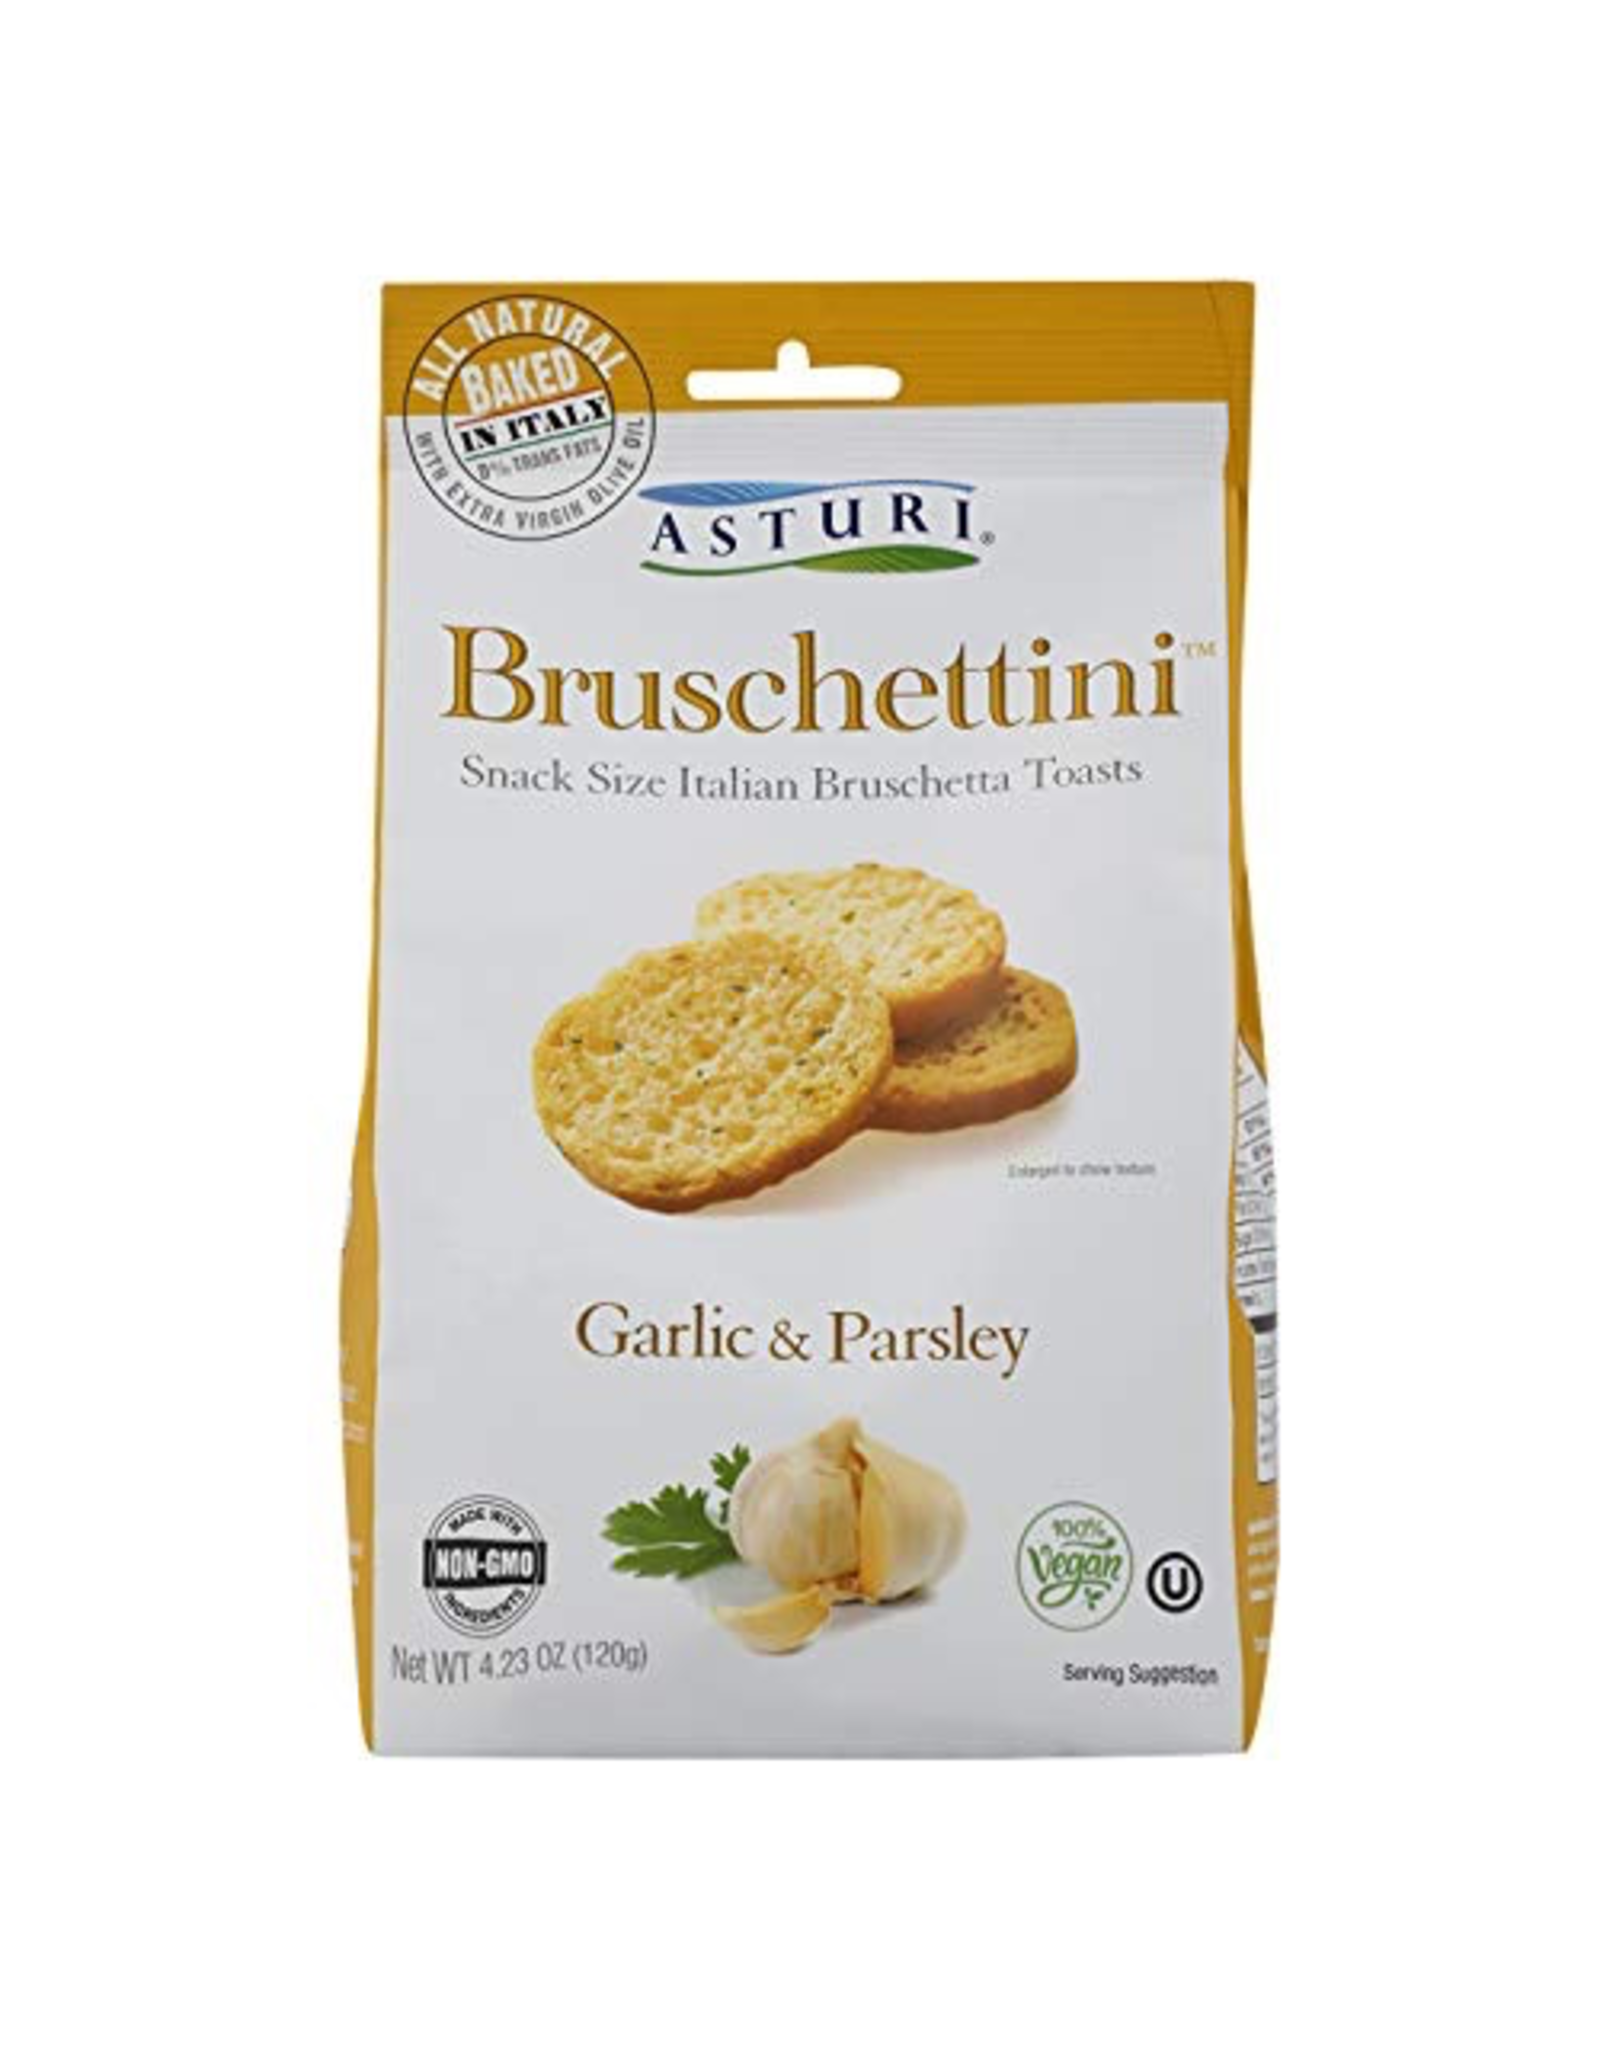 Specialty Foods Asturi, Bruschettini, Garlic and Parsley, Italy, 4.23oz. 120g